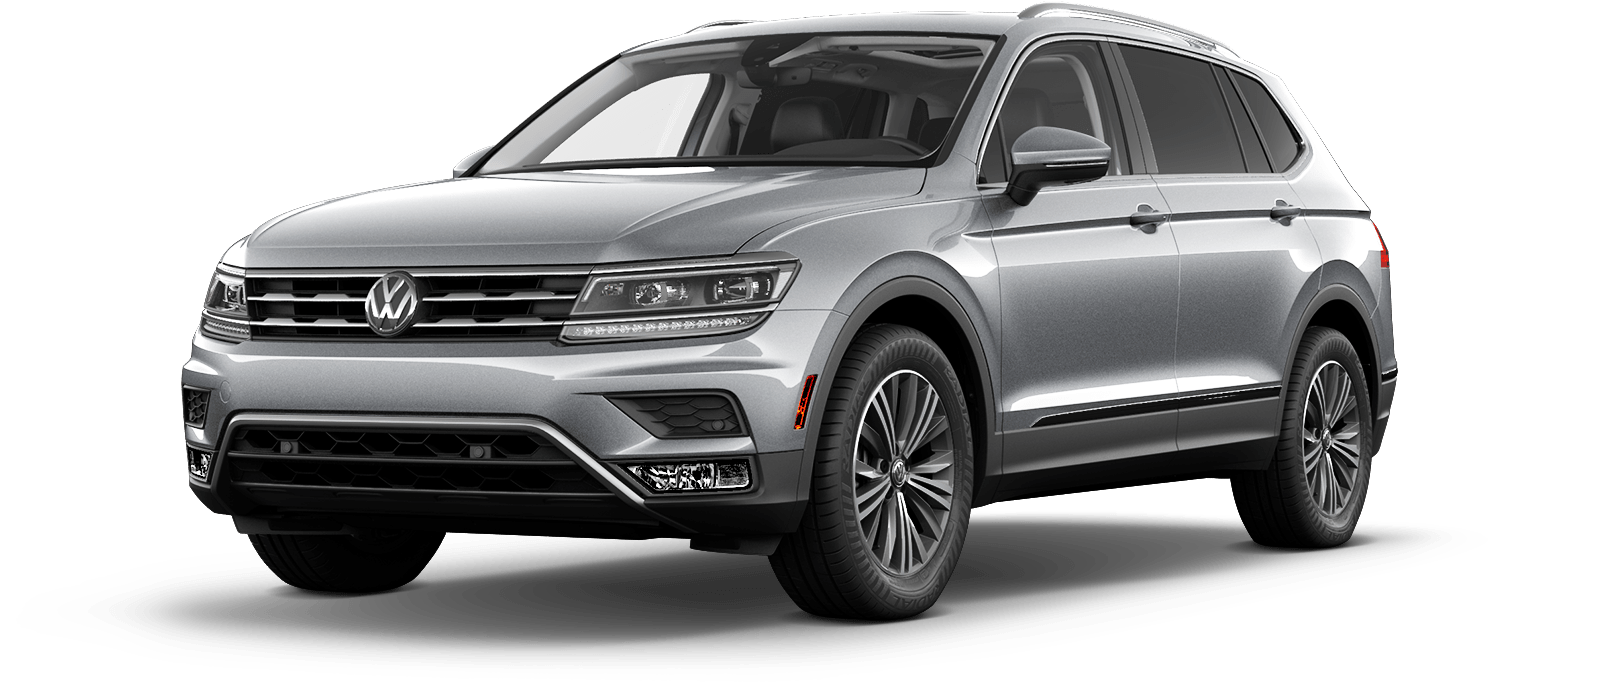 2018 VW Tiguan Platinum Grey Metallic